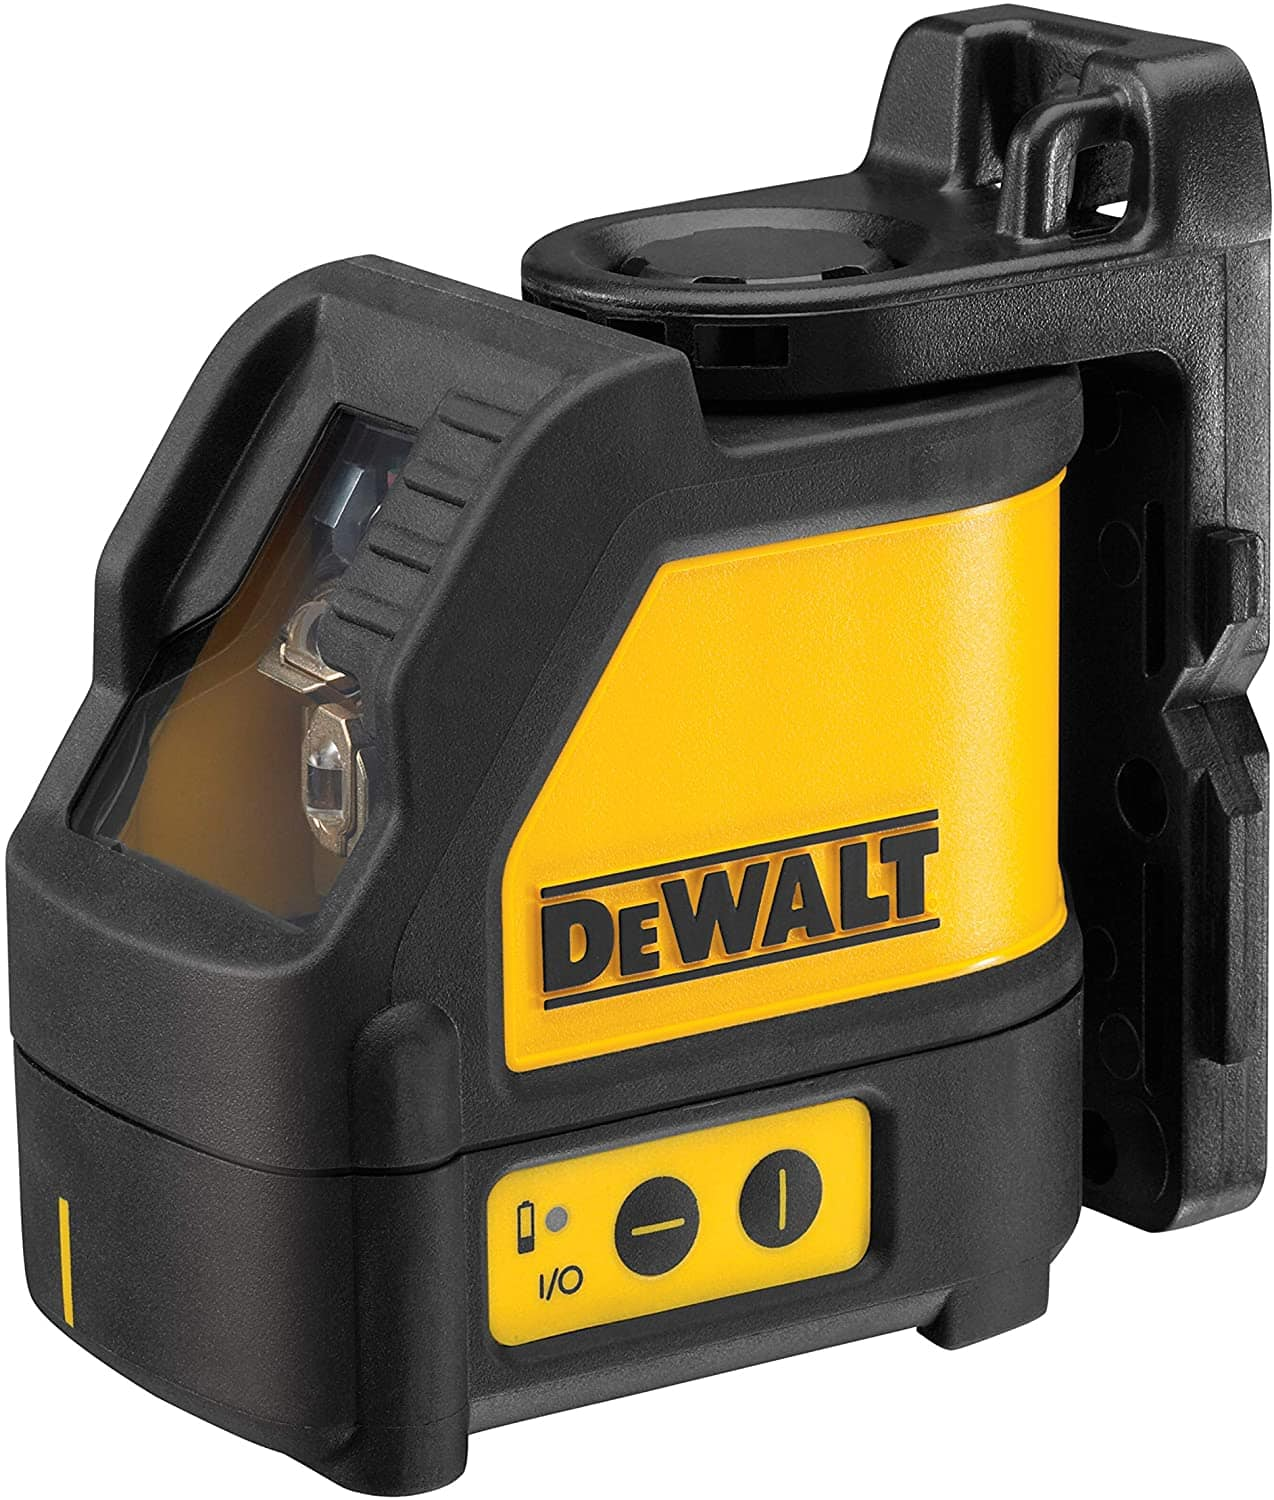 DEWALT (DW088K) Line Laser, Self-Leveling, Cross Line, $111.47, Amazon